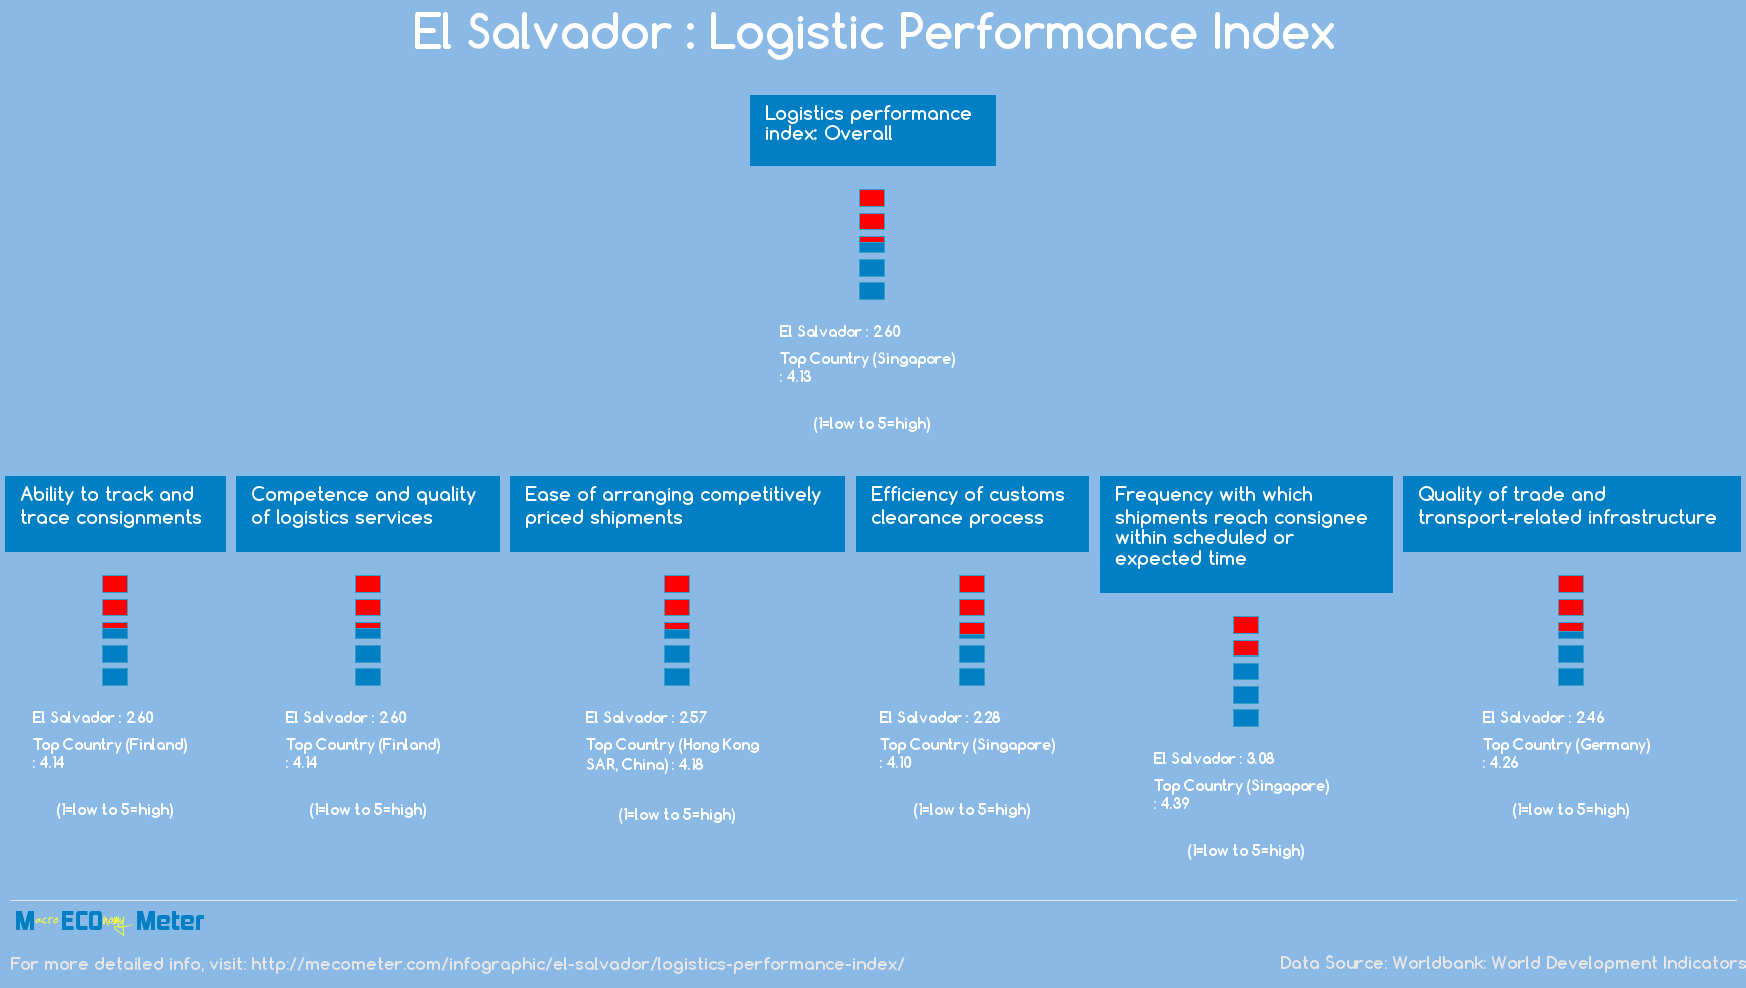 El Salvador : Logistic Performance Index